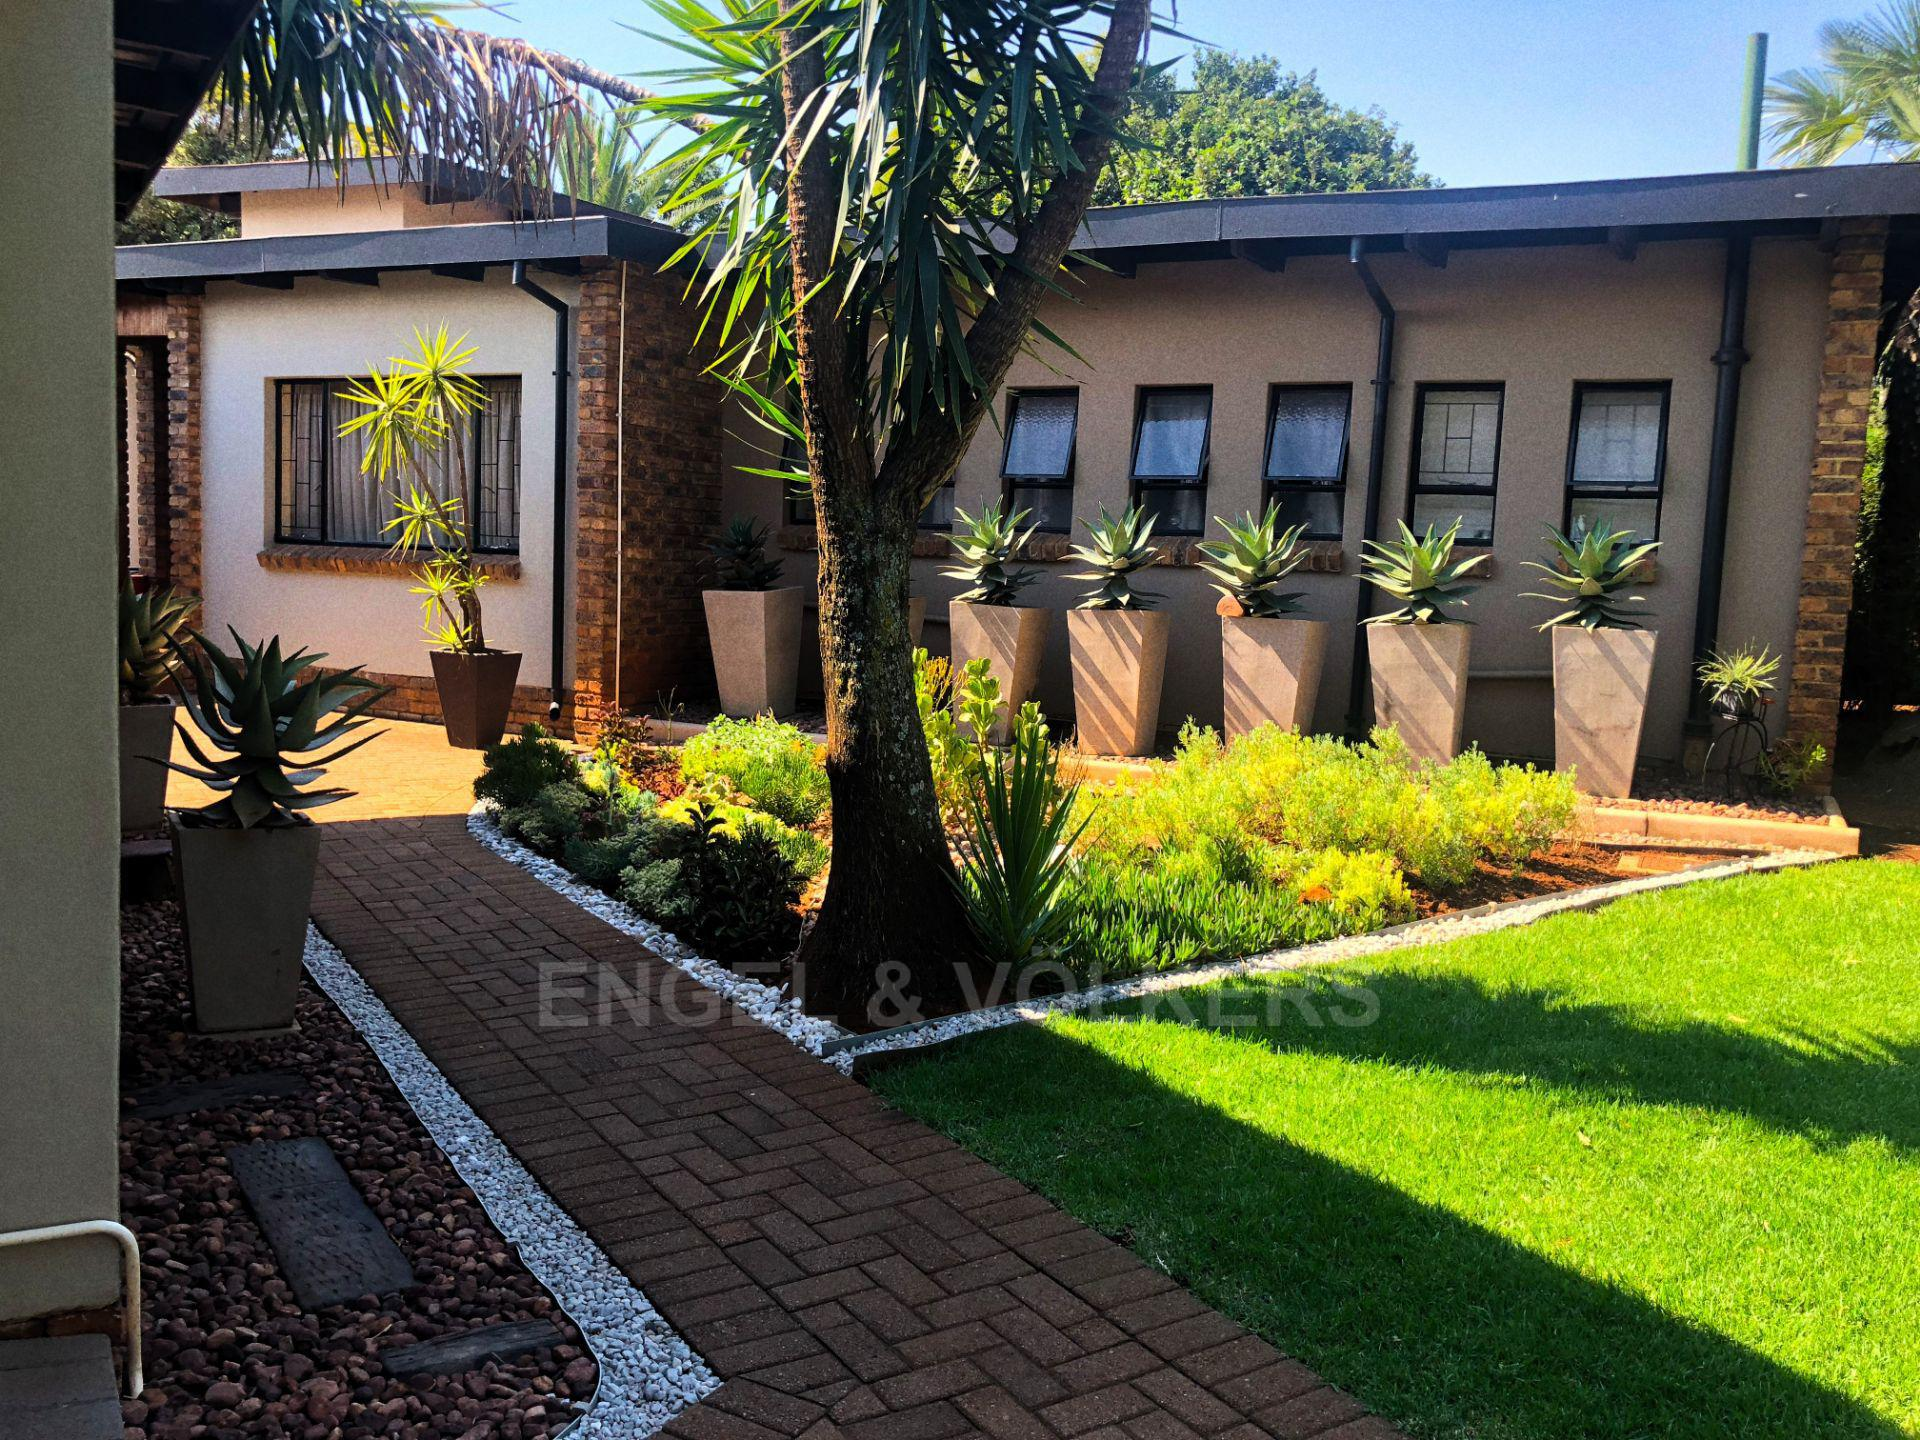 Property and Houses for sale in Doringkloof, House, 4 Bedrooms - ZAR 1,925,000